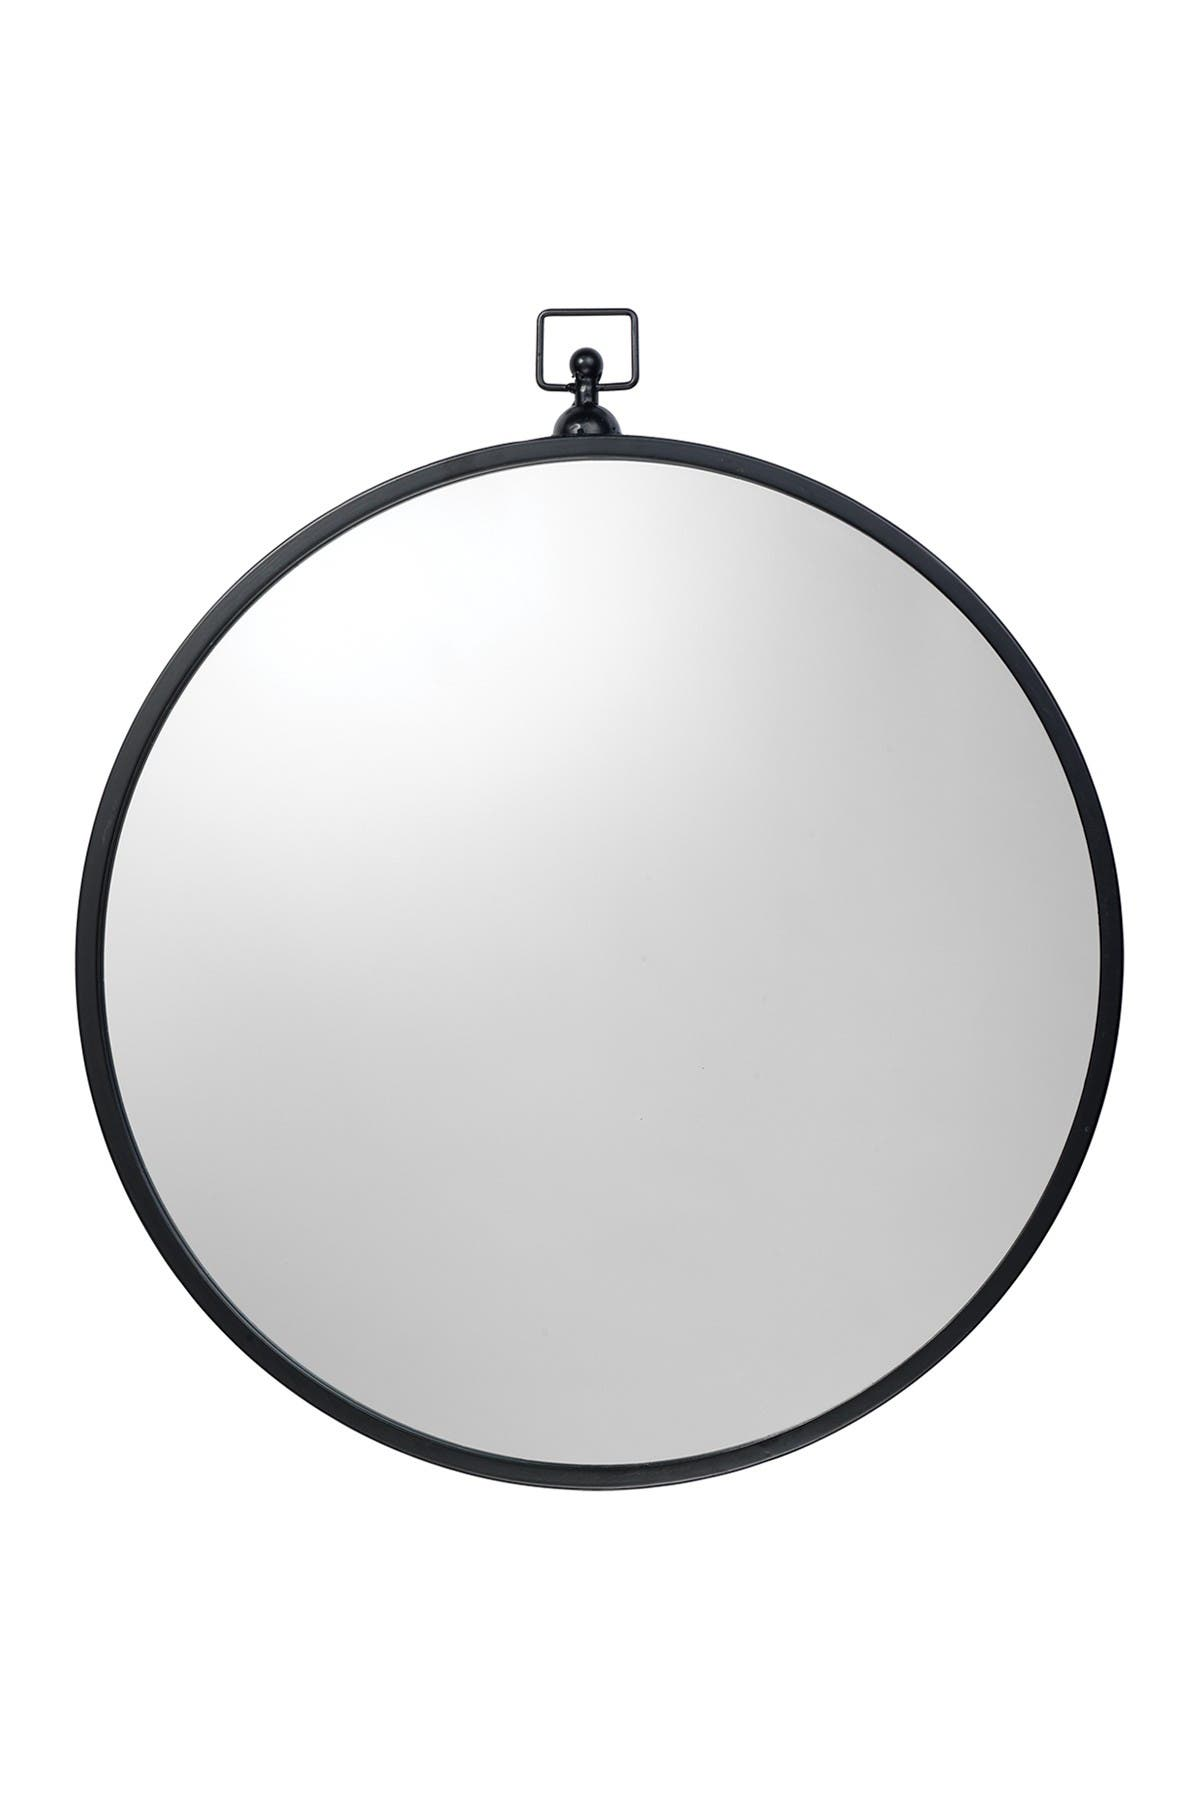 Image of Jamie Young Zoe Mirror